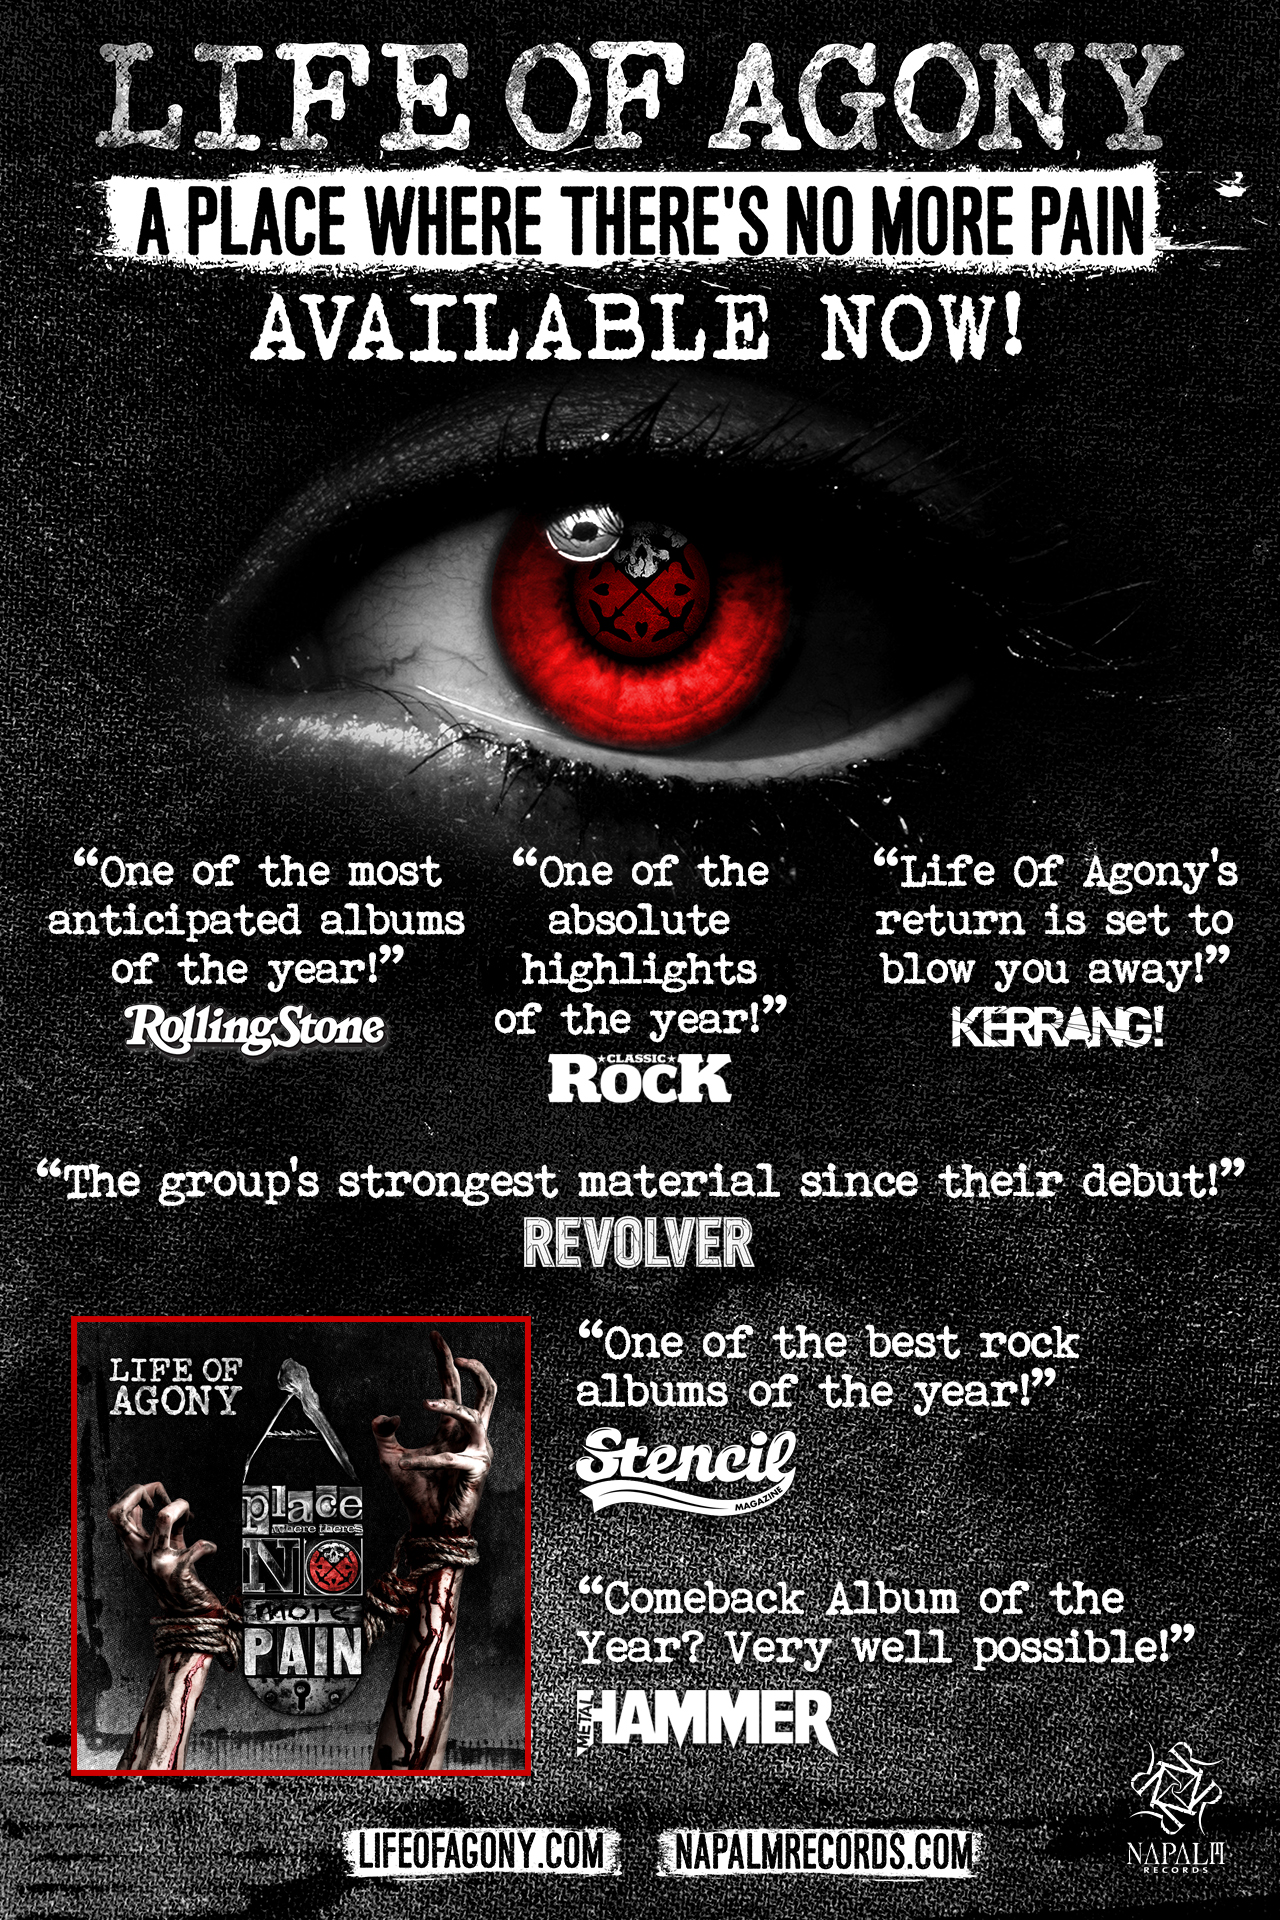 """Life of Agony ' A Place Where There's No More Pain ' Album Reviews   """"One of the Most Anticipated Albums of the Year!""""—ROLLING STONE  """"Life Of Agony's return is set to blow you away!""""—KERRANG!  """"One of the best rock albums of the year!""""—STENCIL  """"Life of Agony have reinvented themselves and returned with A Place Where There's No More Pain, an alternative hard rock record that features the group's strongest material since their debut!""""—REVOLVER  """"Comeback Album of the Year? Very well possible!""""—METAL HAMMER (DE)  """"A true return to form which will satisfy the hunger of their loyal fan-base whilst recruiting newbies along the way. It's great to have them back!""""—VIVE LE ROCK  """"Life of Agony in 2017 is clearly the most comfortable they have ever been in their own skin.""""--THE MONOLITH  10/10 REVIEW! """"This is a stunning comeback with Life Of Agony producing their finest album to date...one of the best hard rock albums of 2017!""""--METAL ON LOUD MAGAZINE  9/10 Review: """"One of the absolute highlights of the year!""""--CLASSIC ROCK  """"Life of Agony have always done exactly what they have wanted to do and never really paid any heed to what has been expected of them...and their evolution has been fascinating, even more so when you consider that there hasn't been a wrong step along the way.""""--ECHOES AND DUST  10/10 Review: """"COMEBACK OF THE YEAR!!""""—ZEPHYRS ODEM  BEST METAL ALBUMS OF THE WEEK: """"LOA drive their sound back into the big, bloody heart of the 90s. Opener 'Meet Your Maker' is a growling, full-throttle belter with dissonant vocal harmonies that recall 'Dirt'-era Alice In Chains.""""--METAL HAMMER  4.8/5 Stars Review: """"A masterpiece of harmony and heavy riffs...They have surpassed all expectations...It is easily their best!""""--SKULLS N BONES  90/100 Review: """"A Place Where There's No More Pain is a very strong album...with a thick wink to the past and beautiful songs.""""--ROCKMUZINE  9/10 Review: """"A Place Where There's No More Pain is an album full to the brim with hulking great groov"""